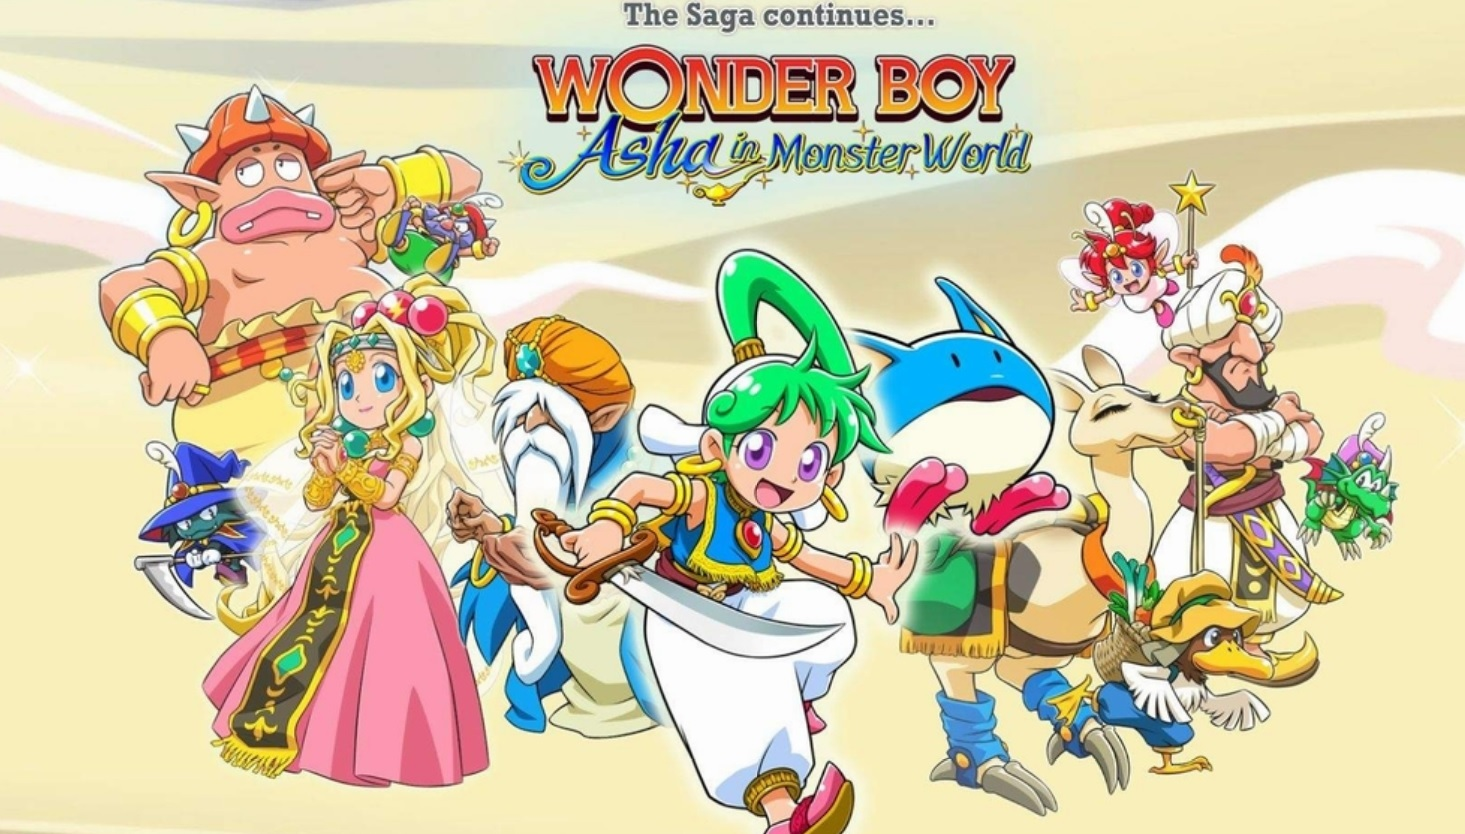 Wonder Boy - Asha in Monster World New Trailer